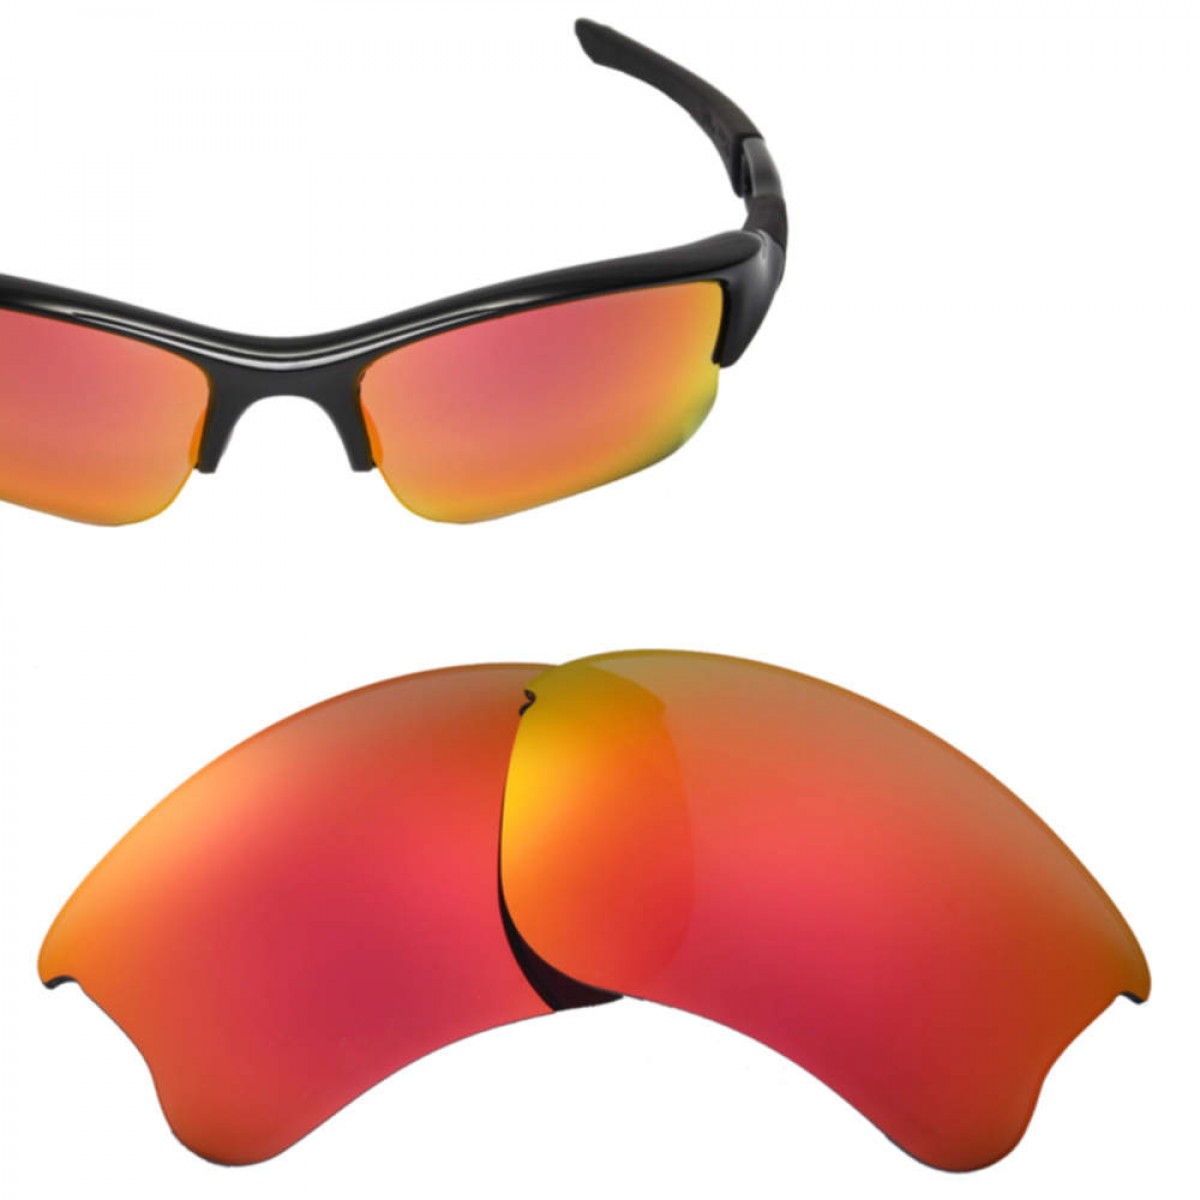 98964804d7a Cofery Lenses Store Cofery Replacement Lenses for Oakley Flak Jacket XLJ  Sunglasses